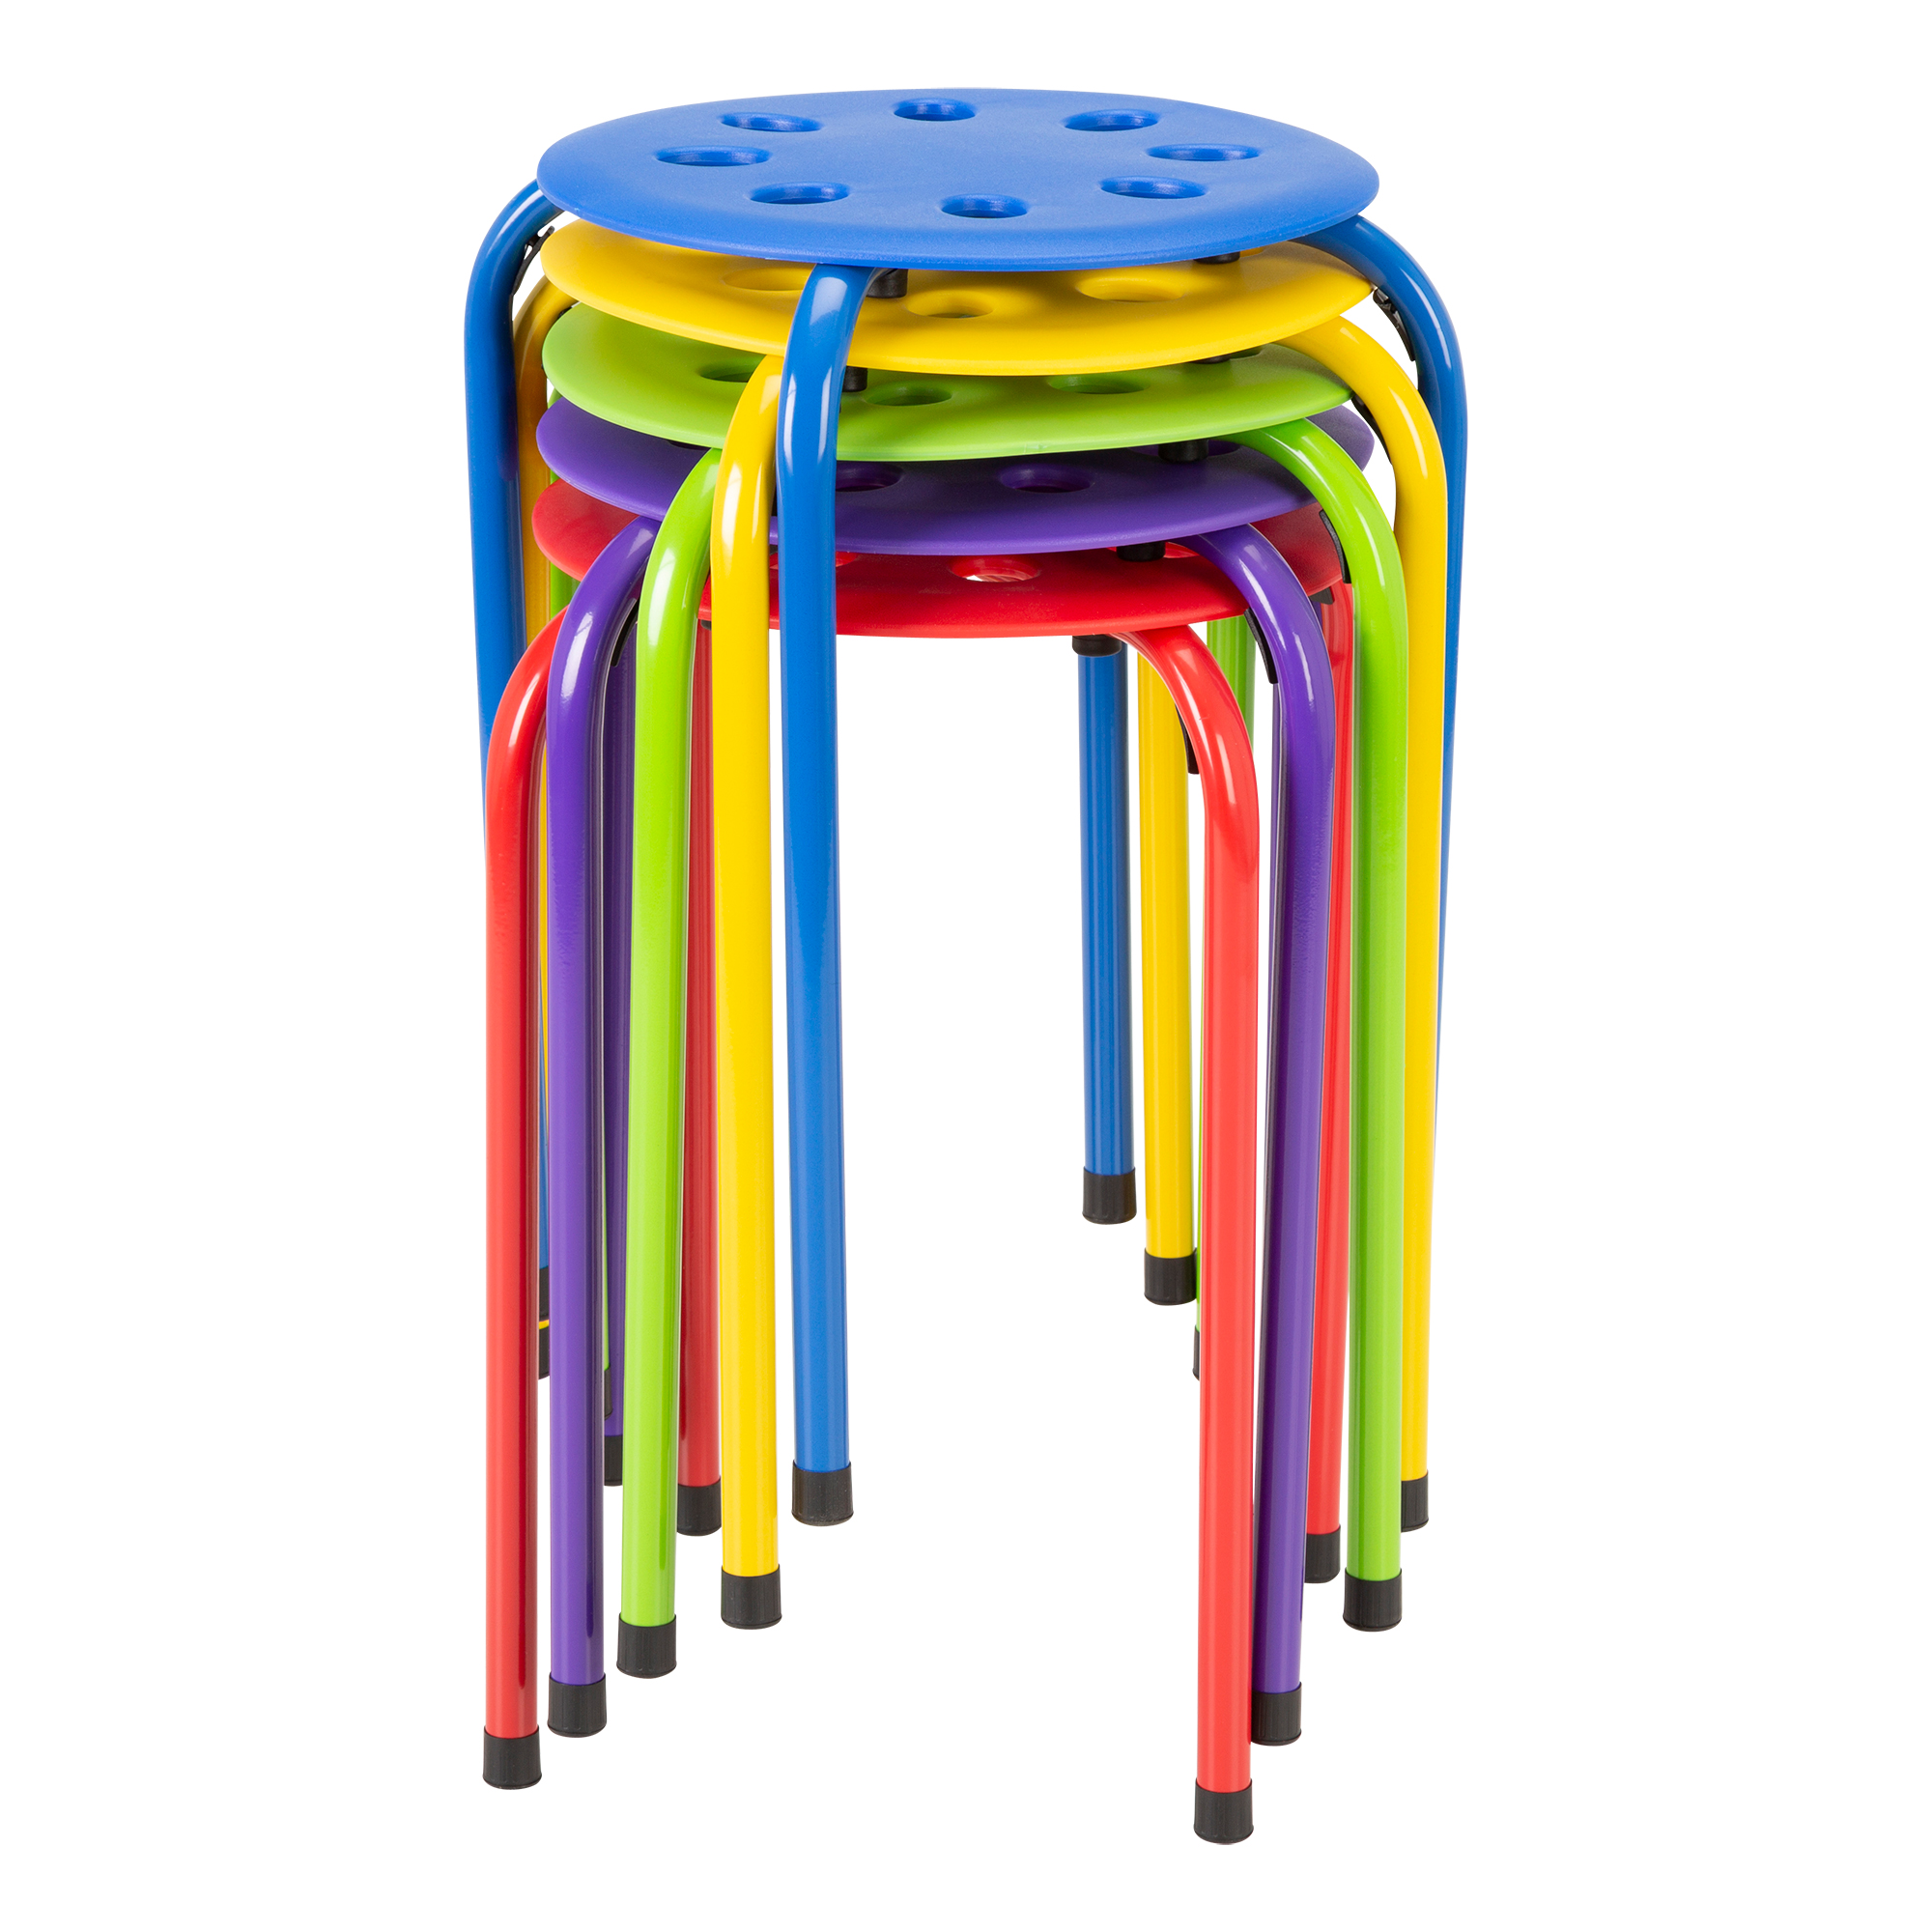 Awe Inspiring Green River Furniture Corp Bar Stools Onthecornerstone Fun Painted Chair Ideas Images Onthecornerstoneorg